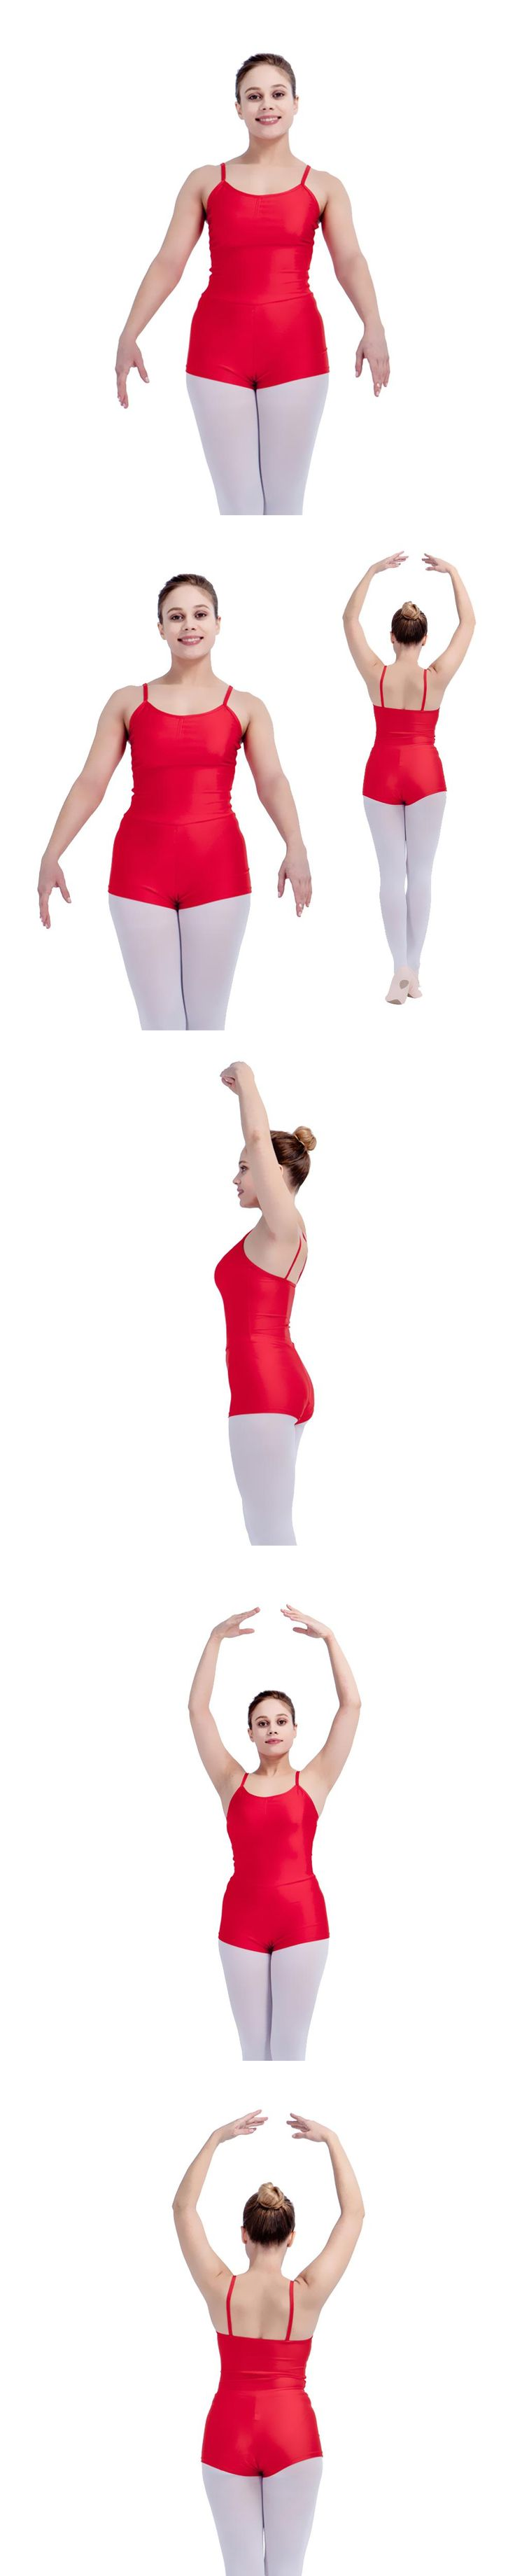 Retail Wholesale Red,Black and More Colors Nylon/Lycra Camisole Ballet Dancing Unitards for Girls and Ladies